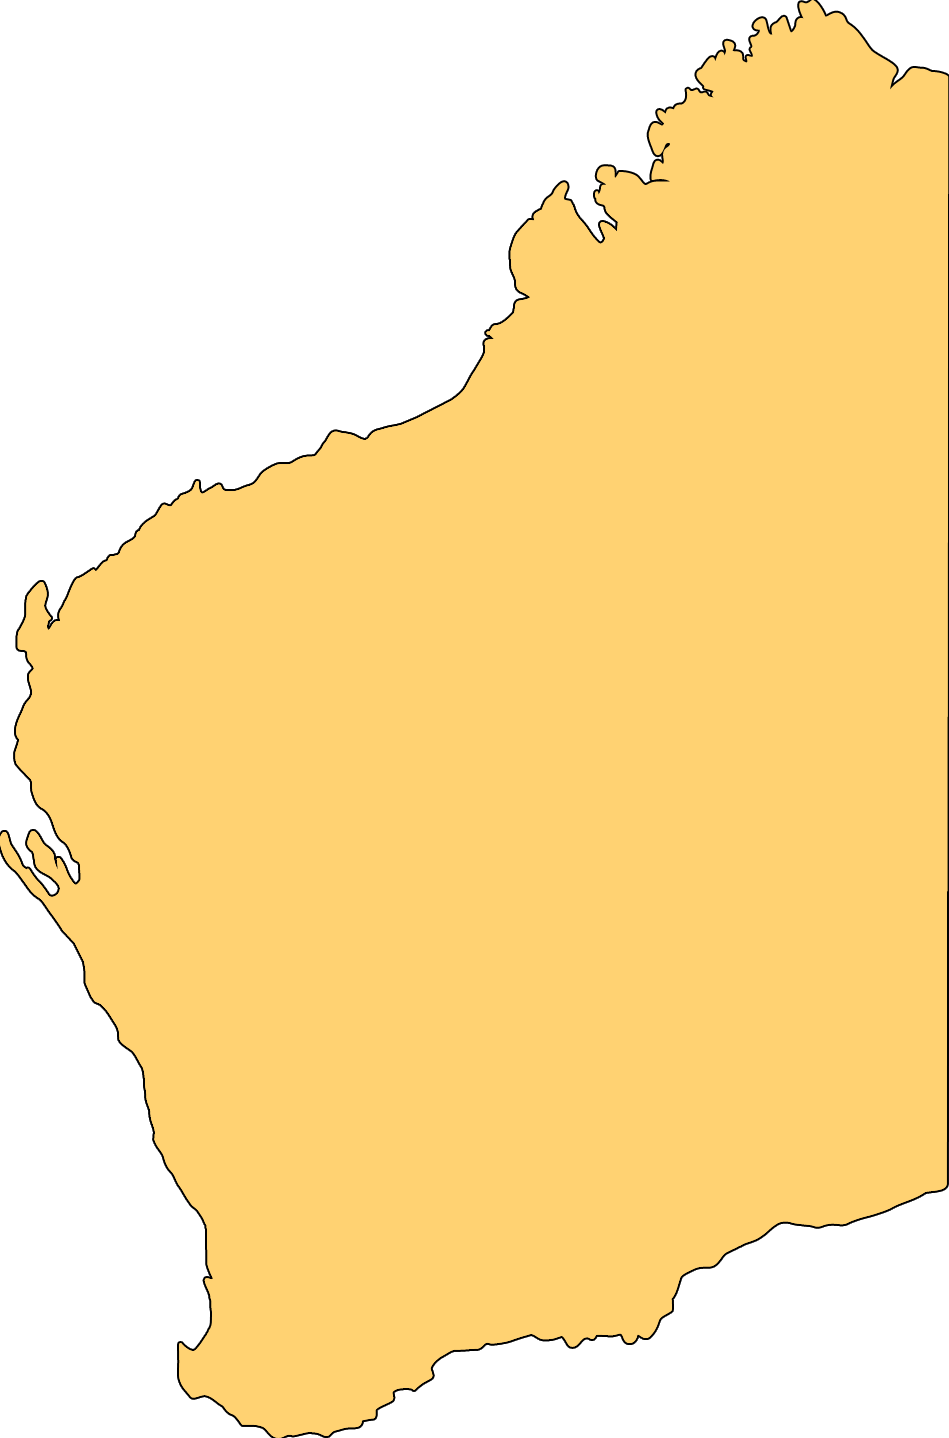 Blank Map of Western Australia • Mapsof.net